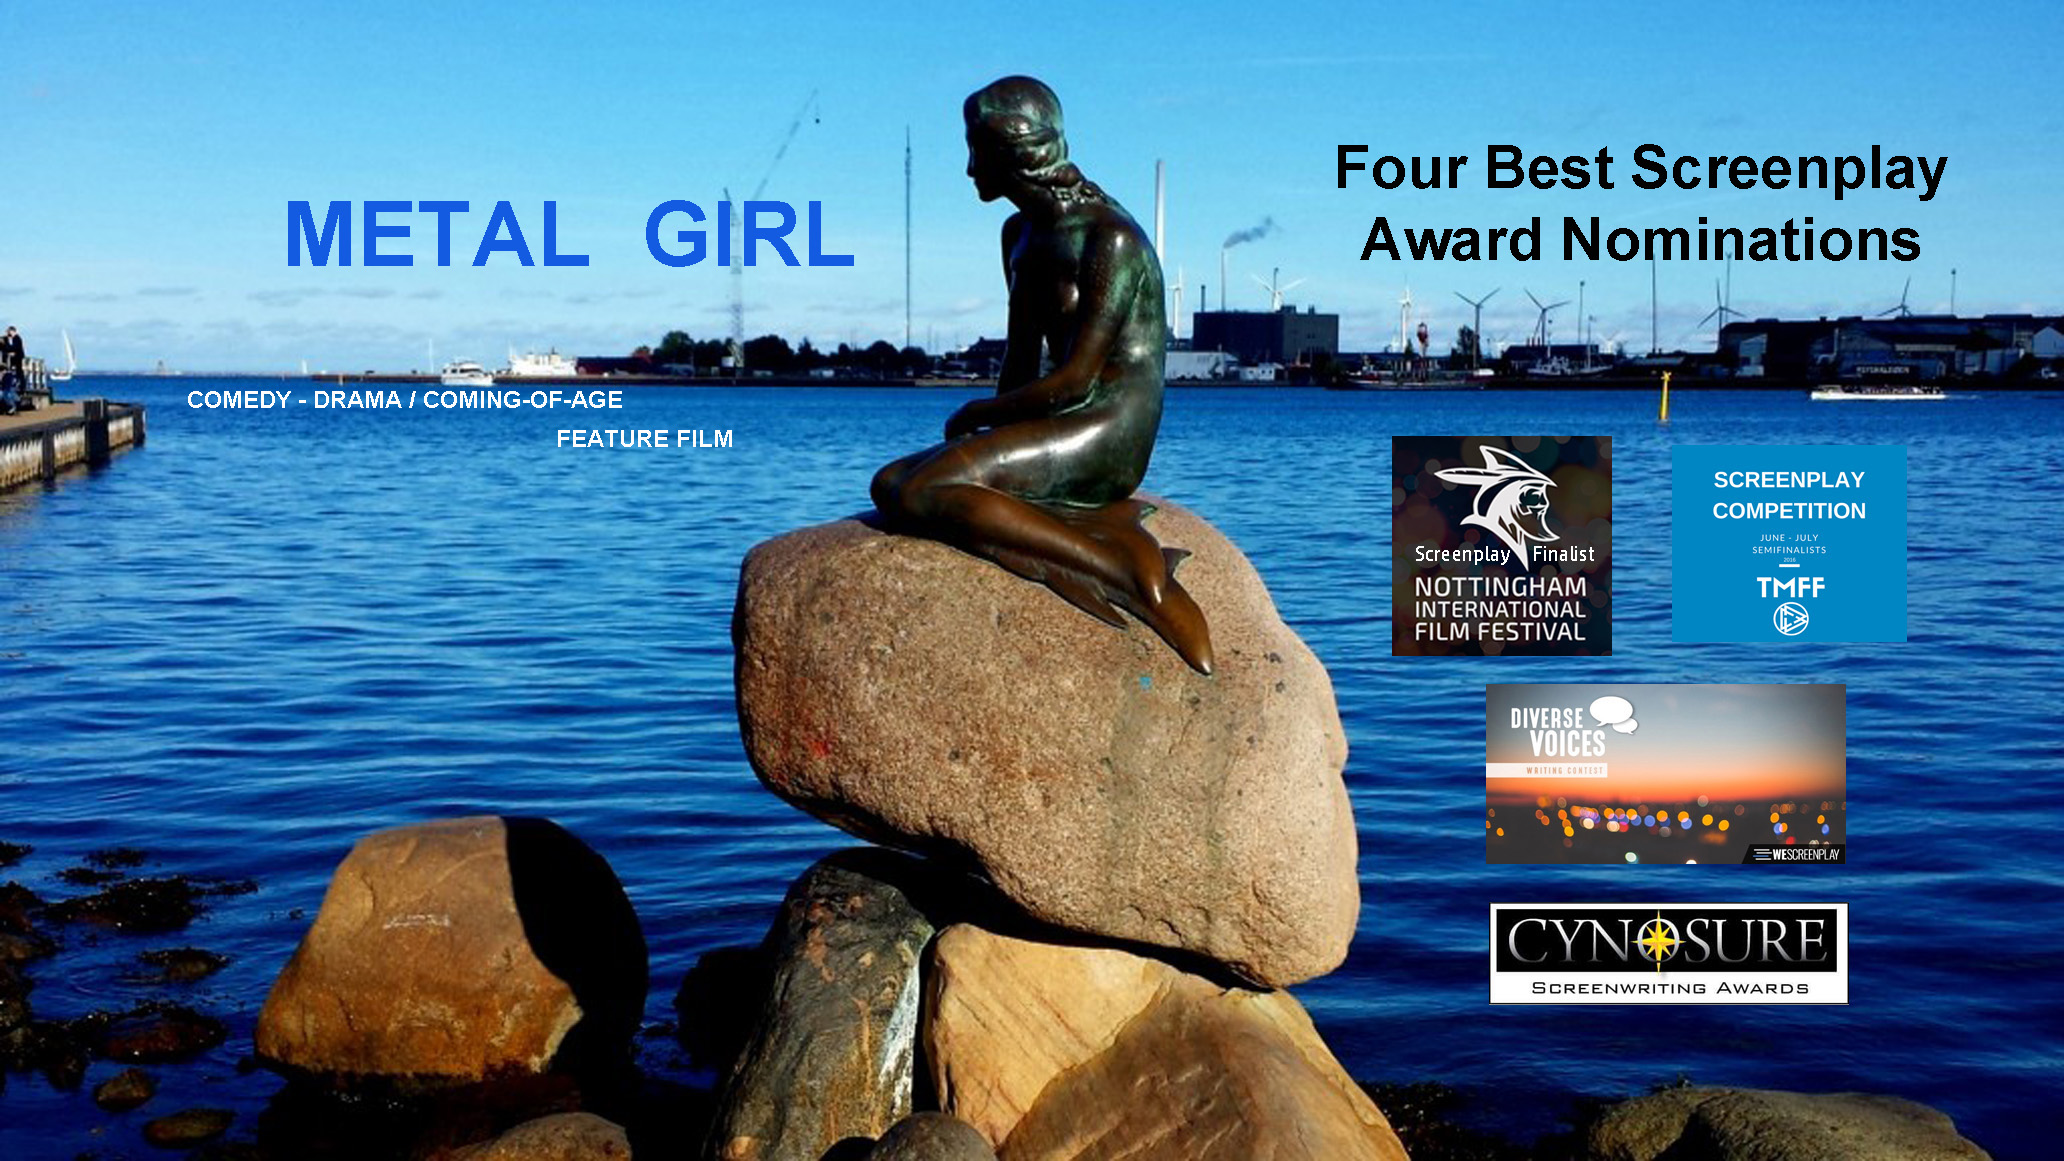 Metal Girl - 4 Screenplay Award Nominations